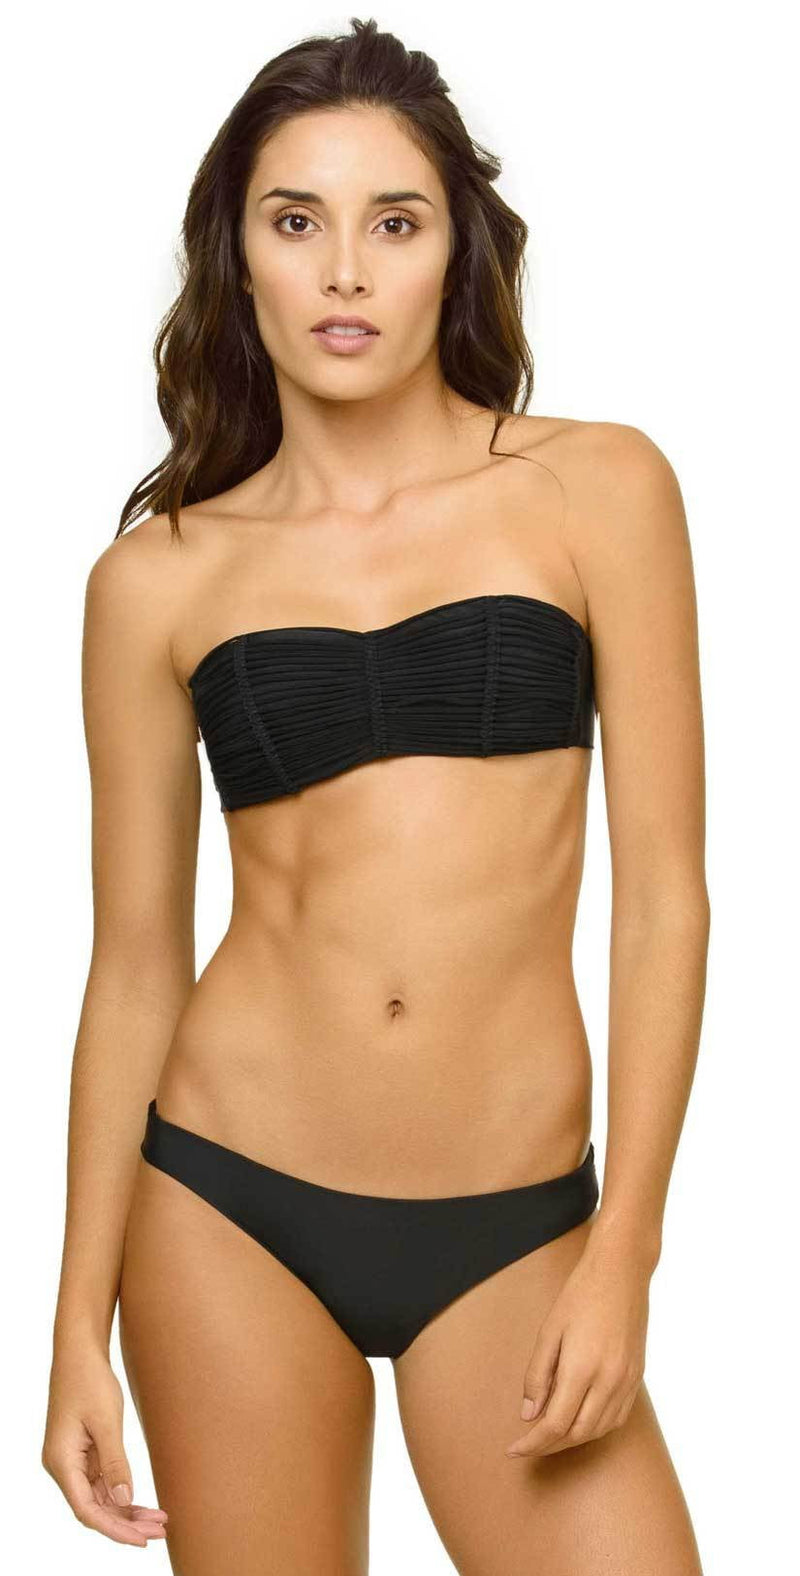 PilyQ Midnight Gold Isla Bandeau Top in Black MID-156B: